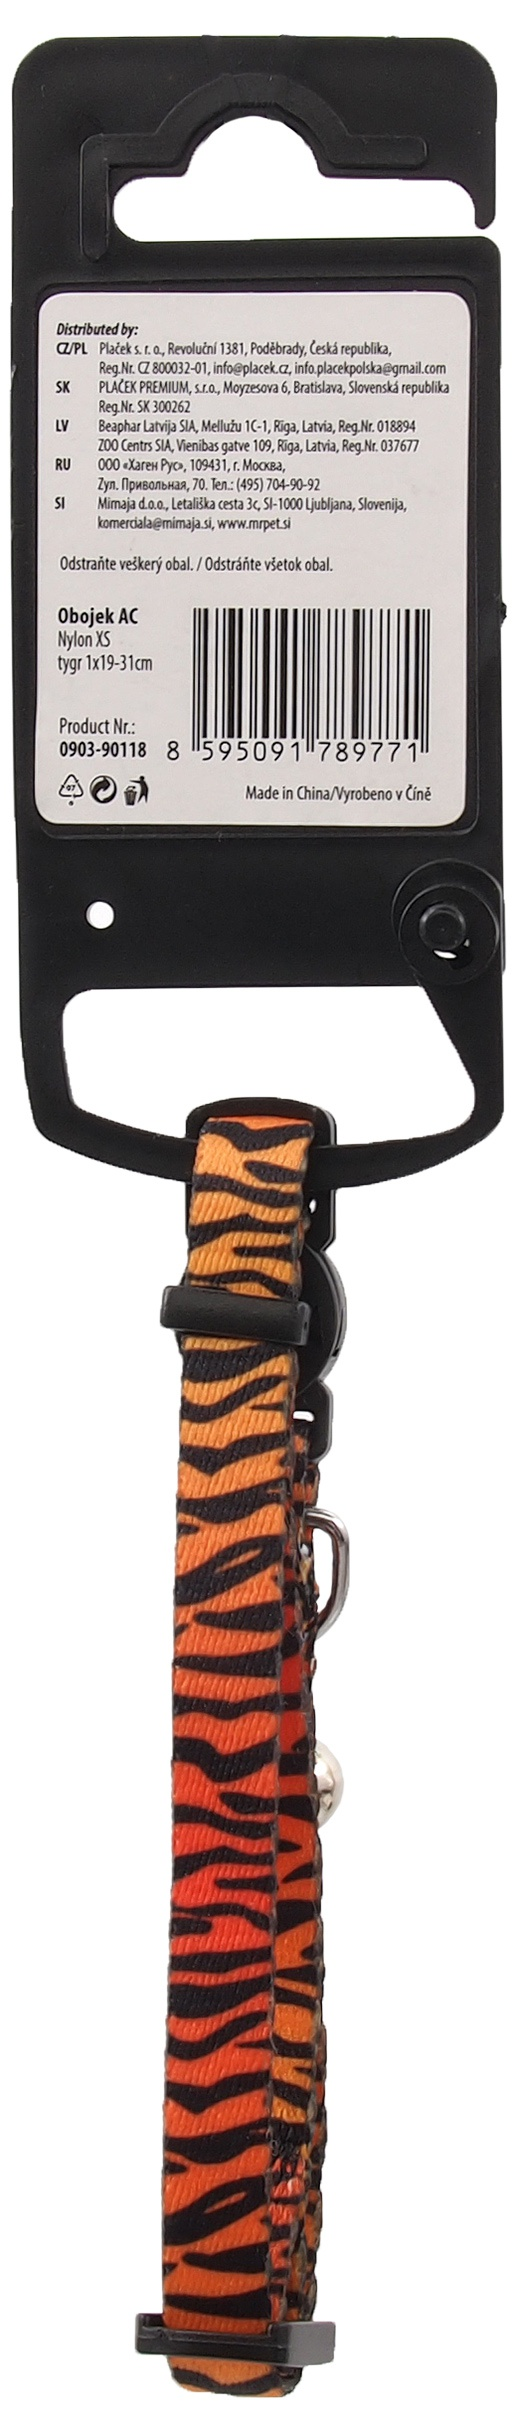 Obojek Active Cat nylon XS tygr 1x19-31cm